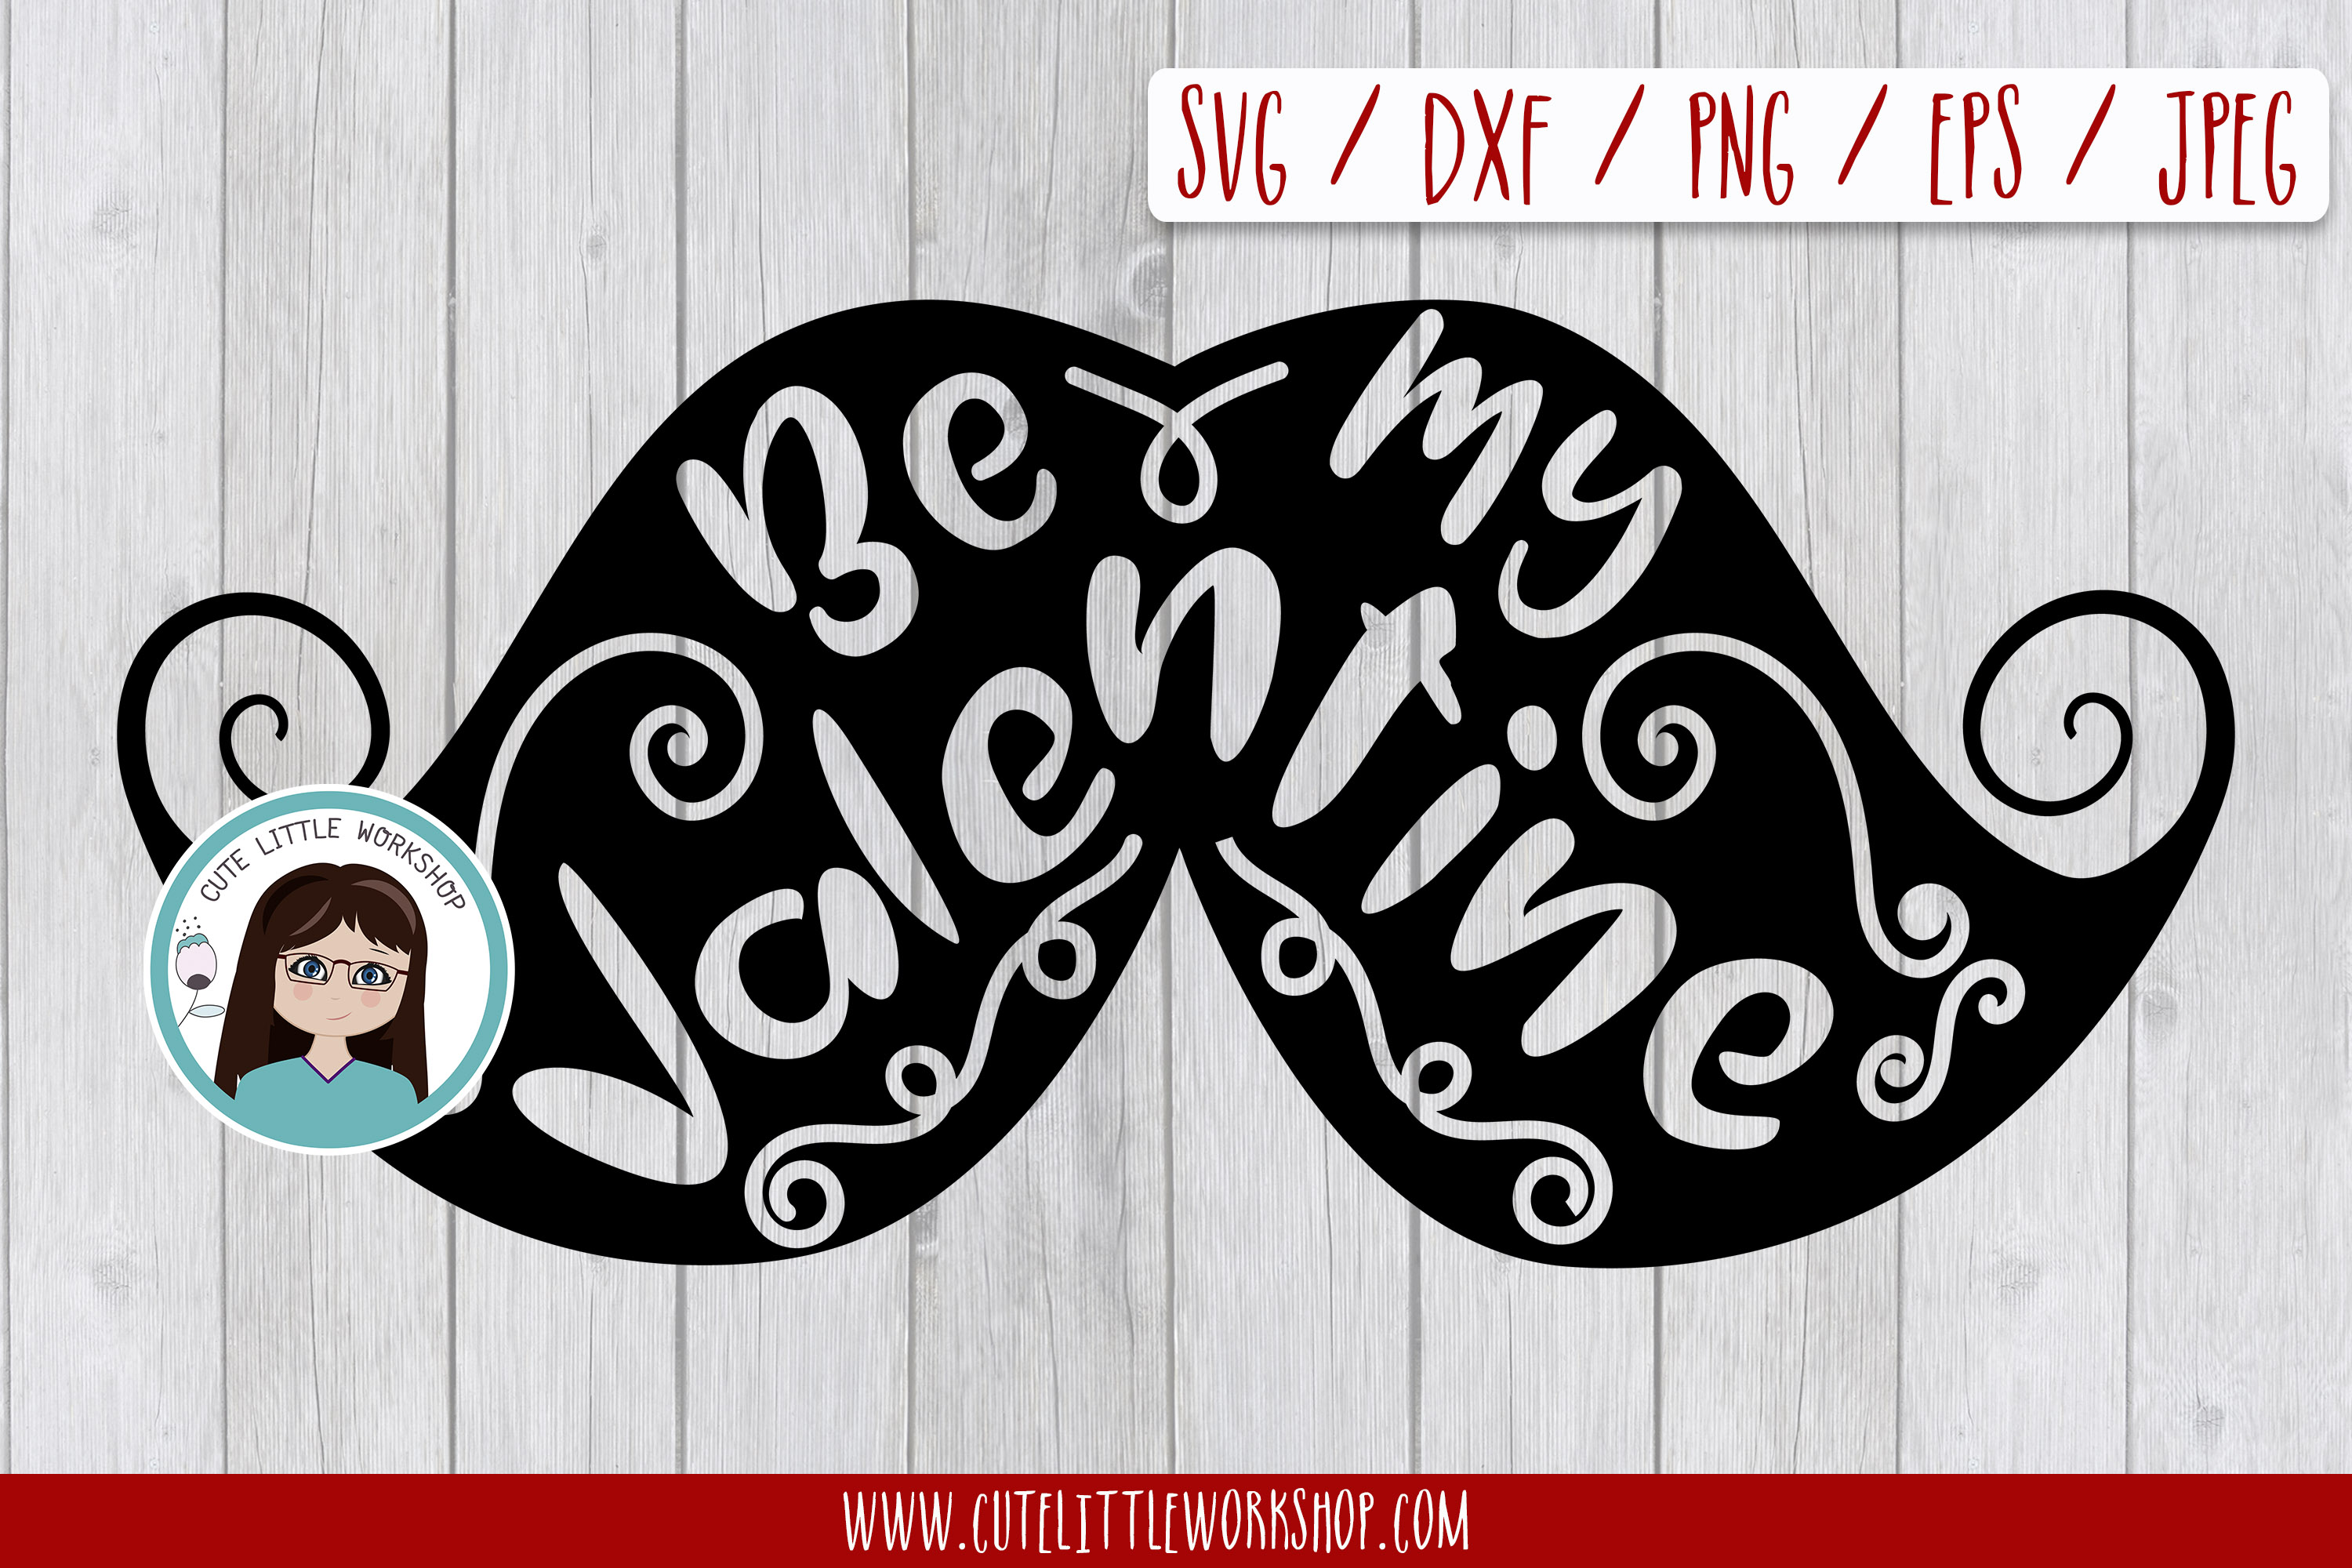 Be my valentine Mustache svg, dxf, png, eps example image 1